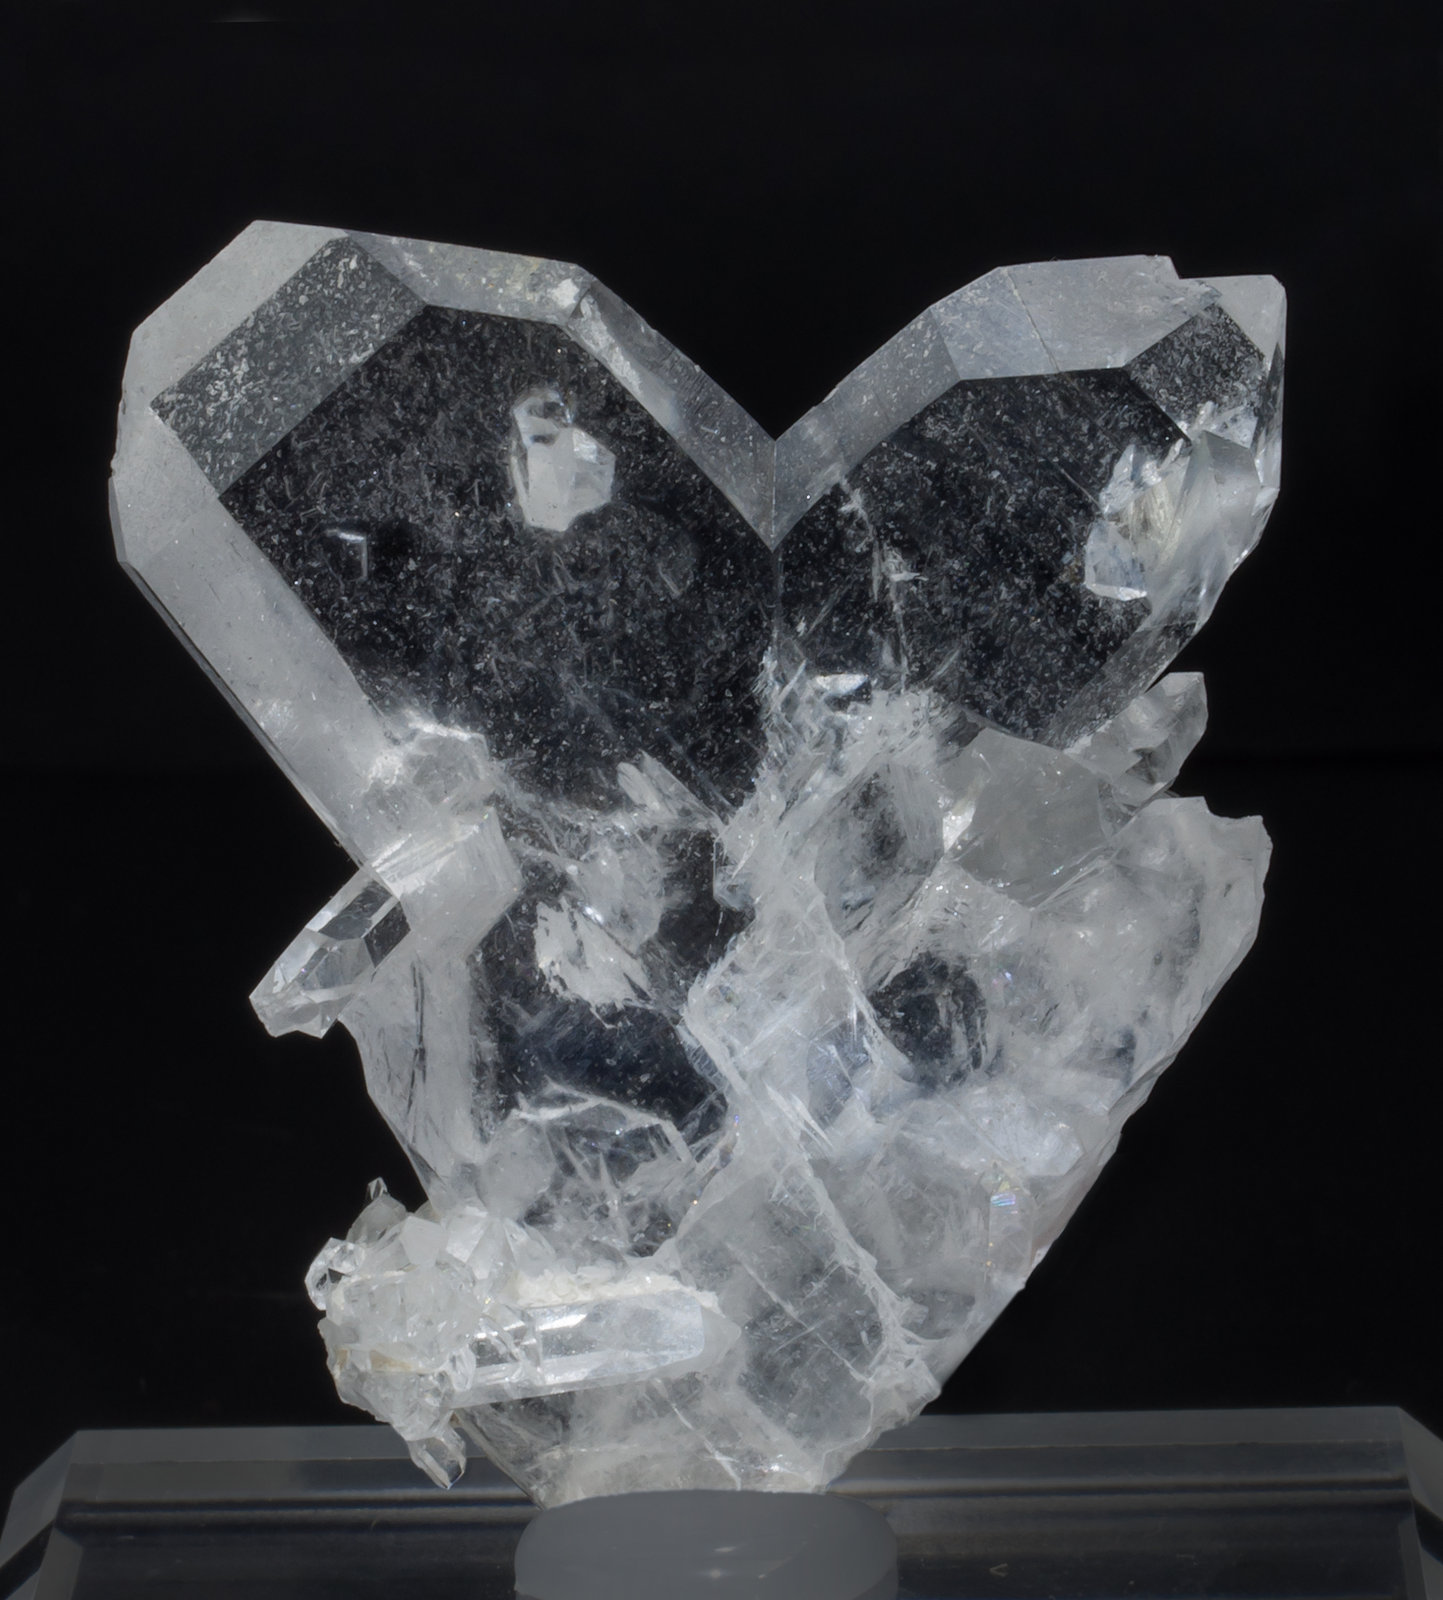 specimens/s_imagesAB2/Quartz-TF69AB2r.jpg